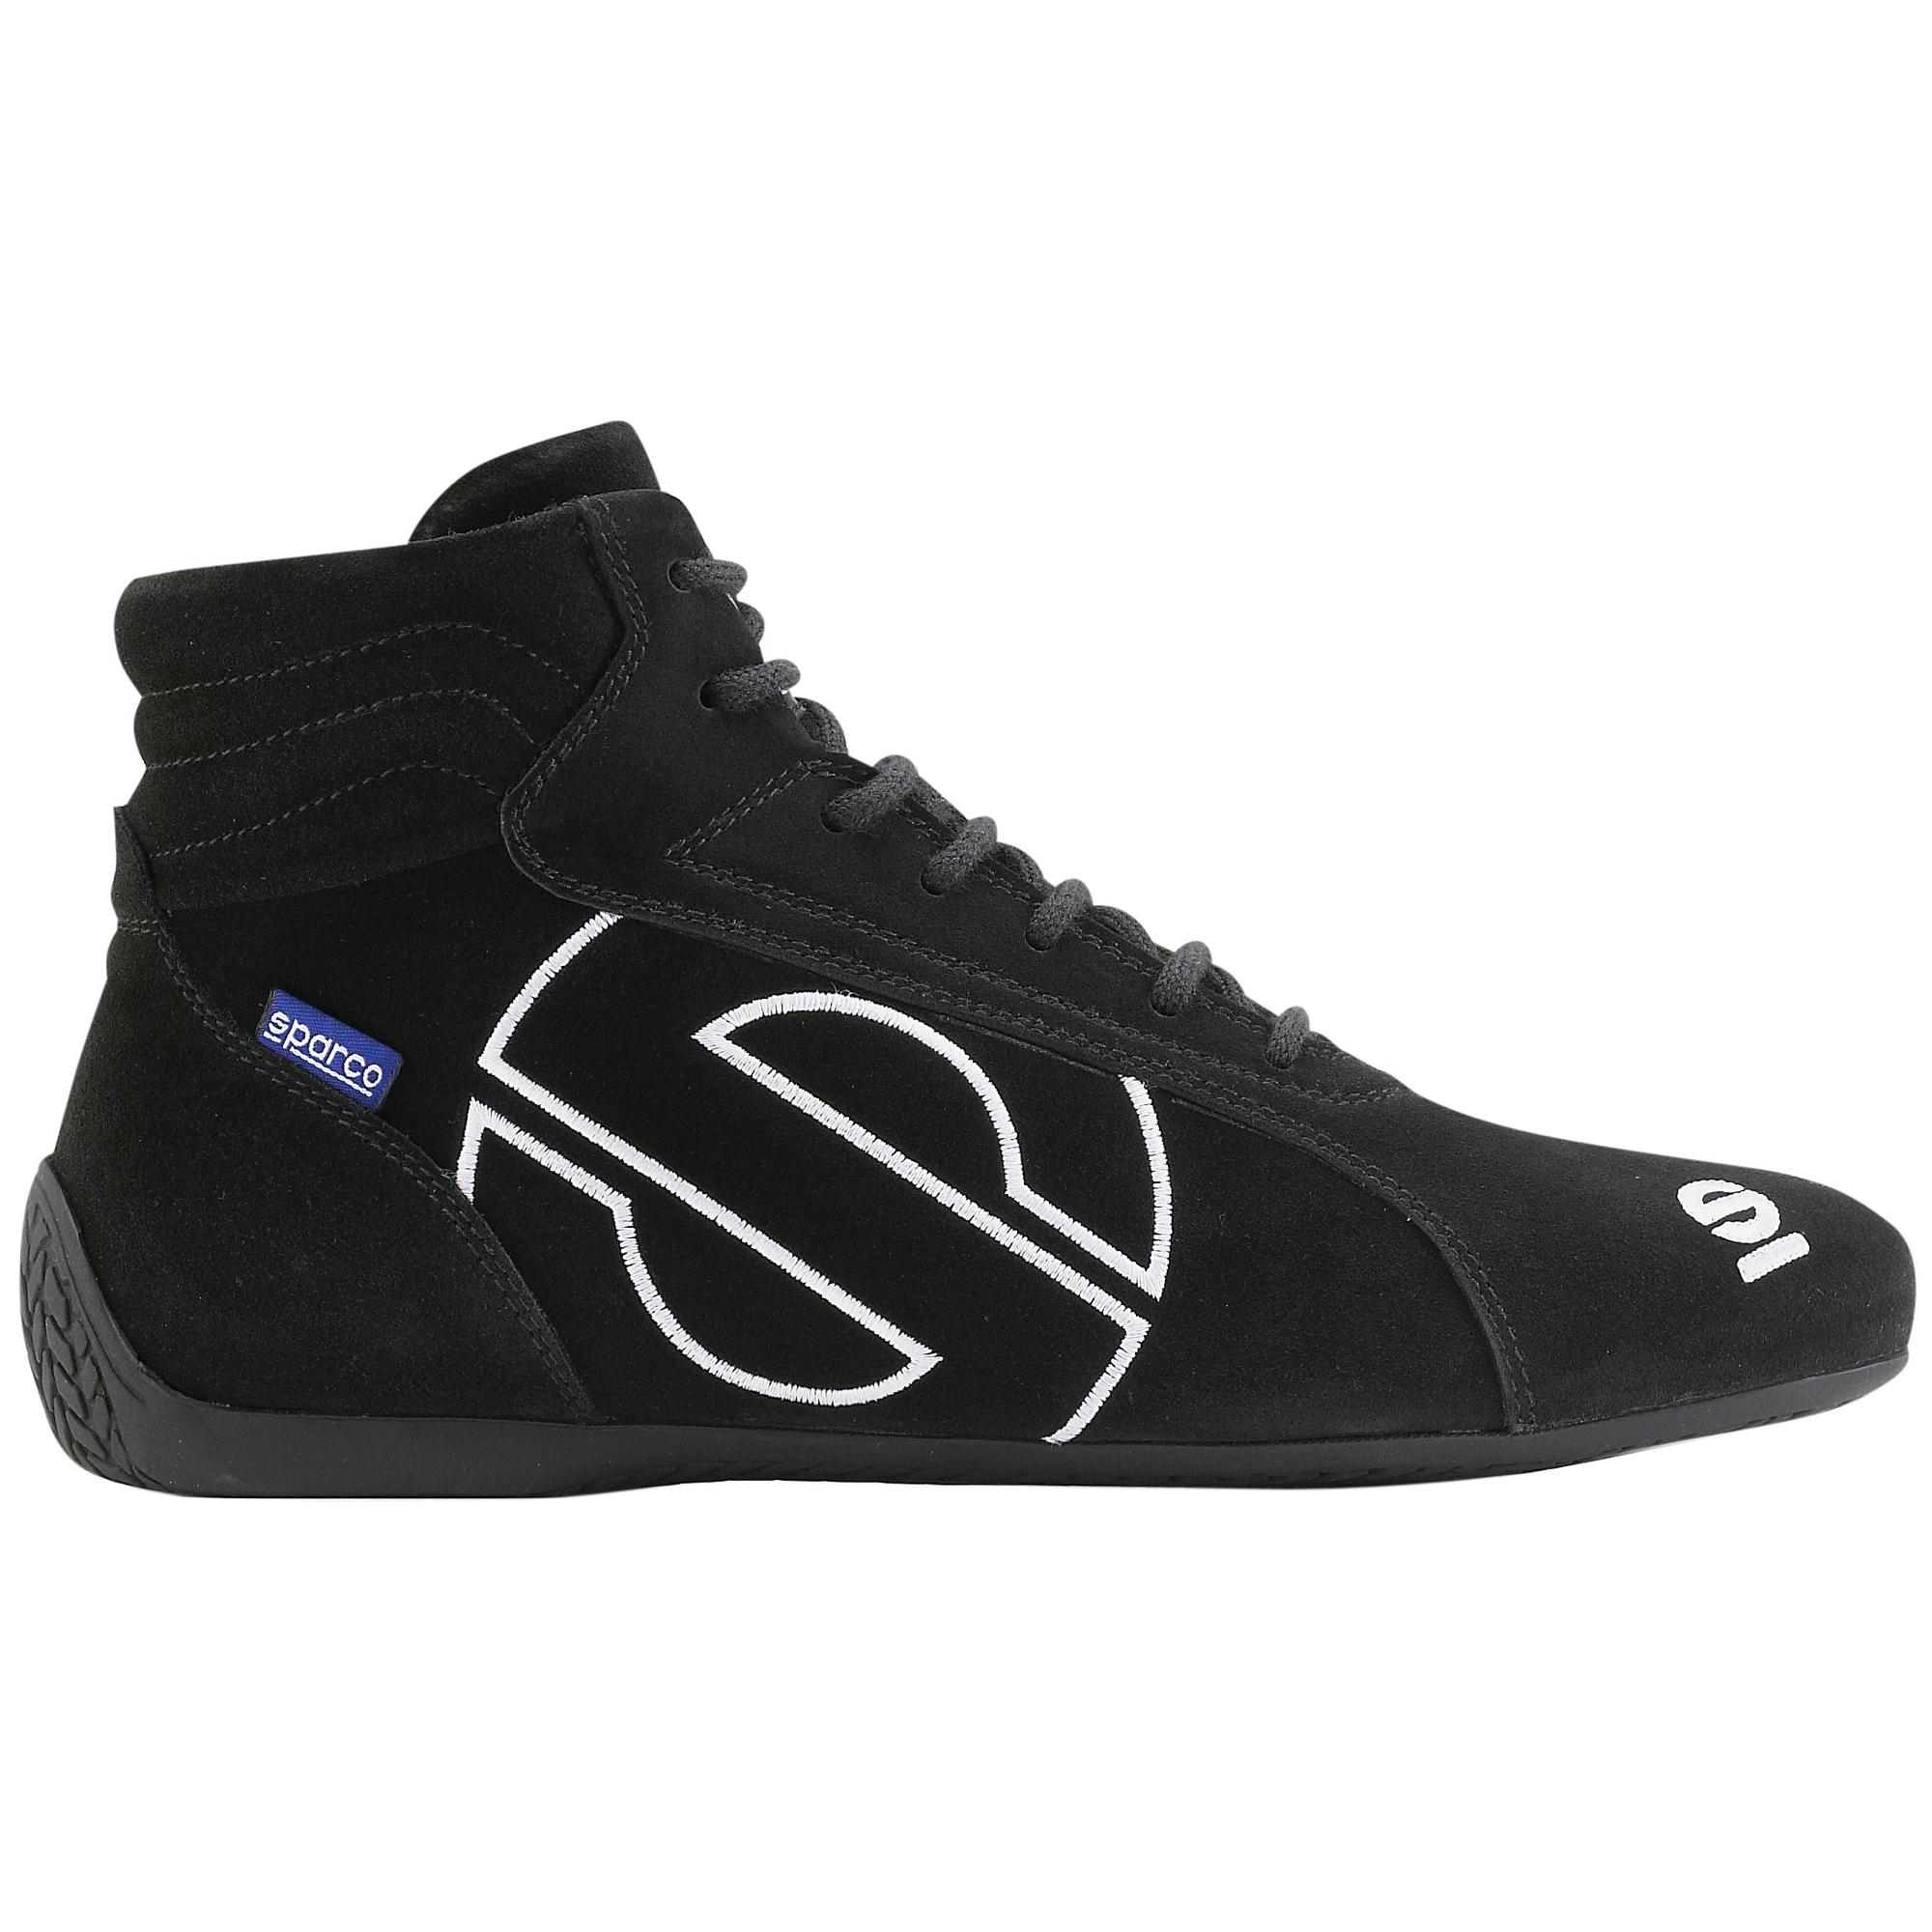 Sparco Racing Sparco Slalom Sl-3 Race Boots